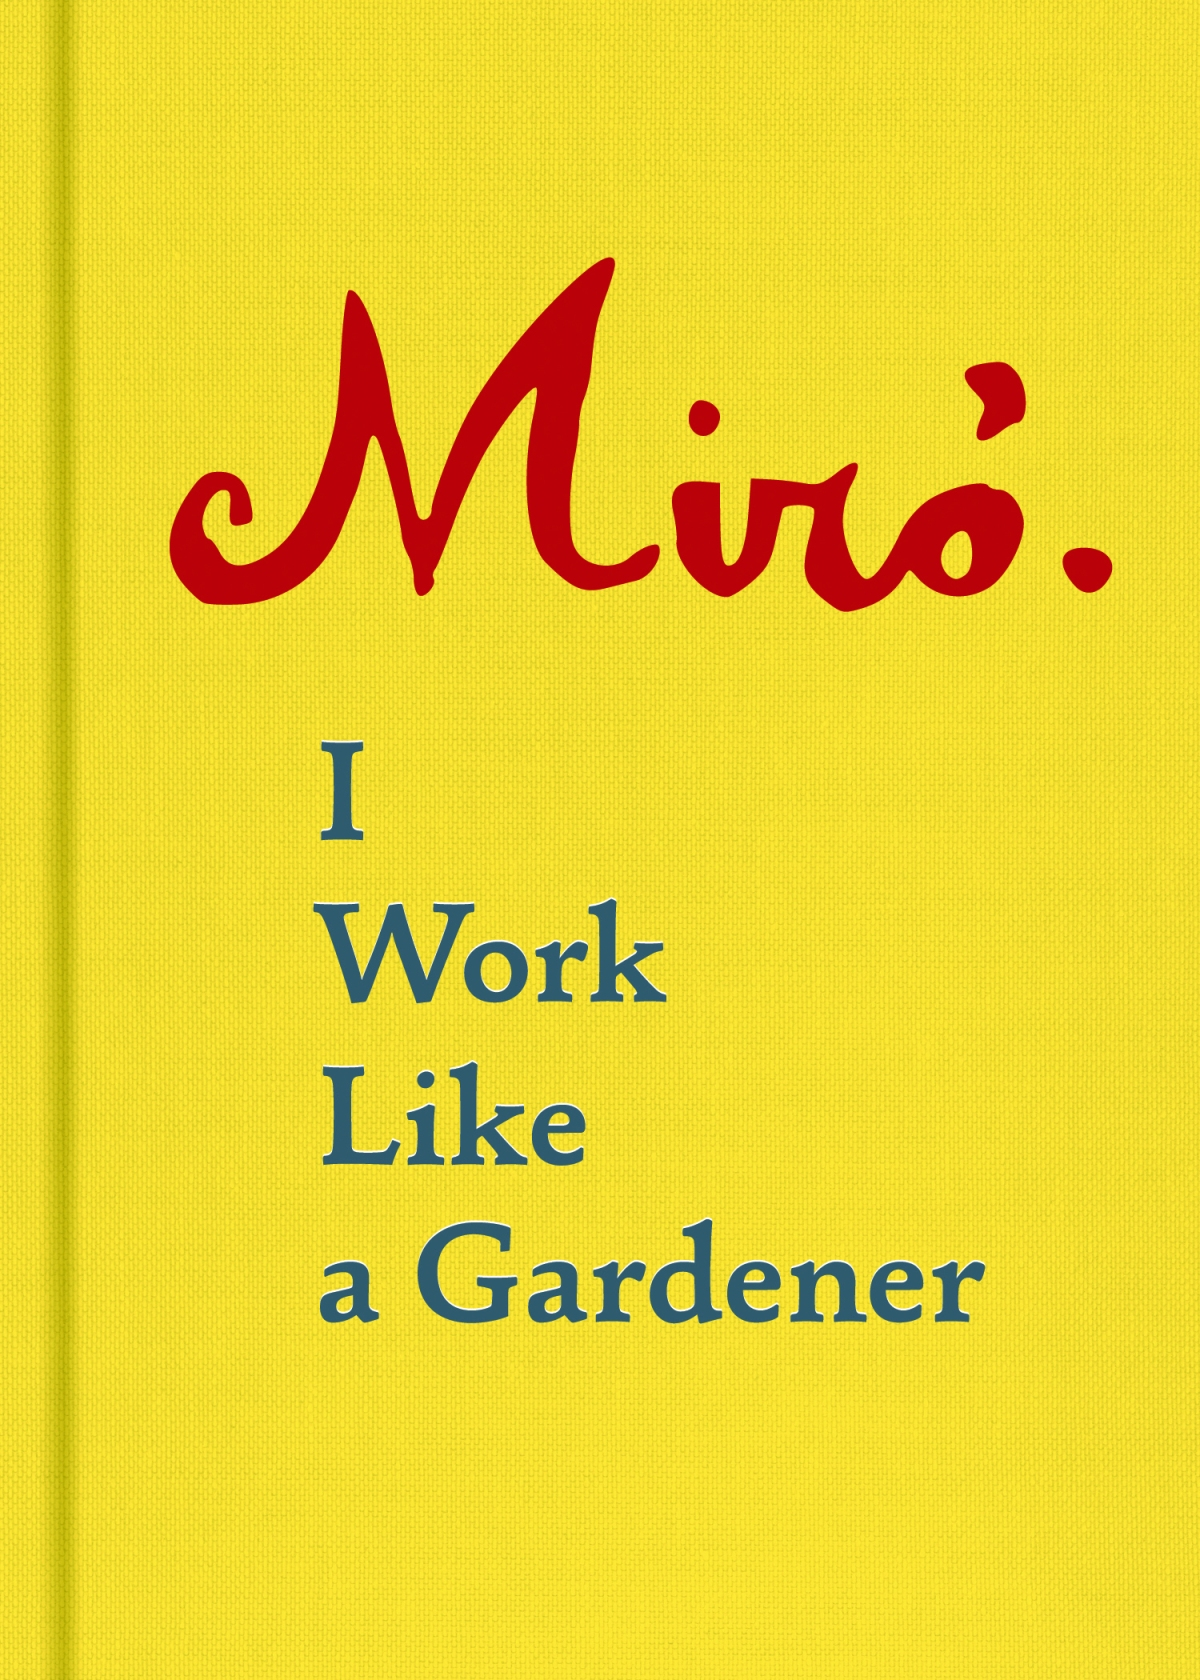 I Work Like a Gardener: A New Translation of Joan Miró's Art Philosophy